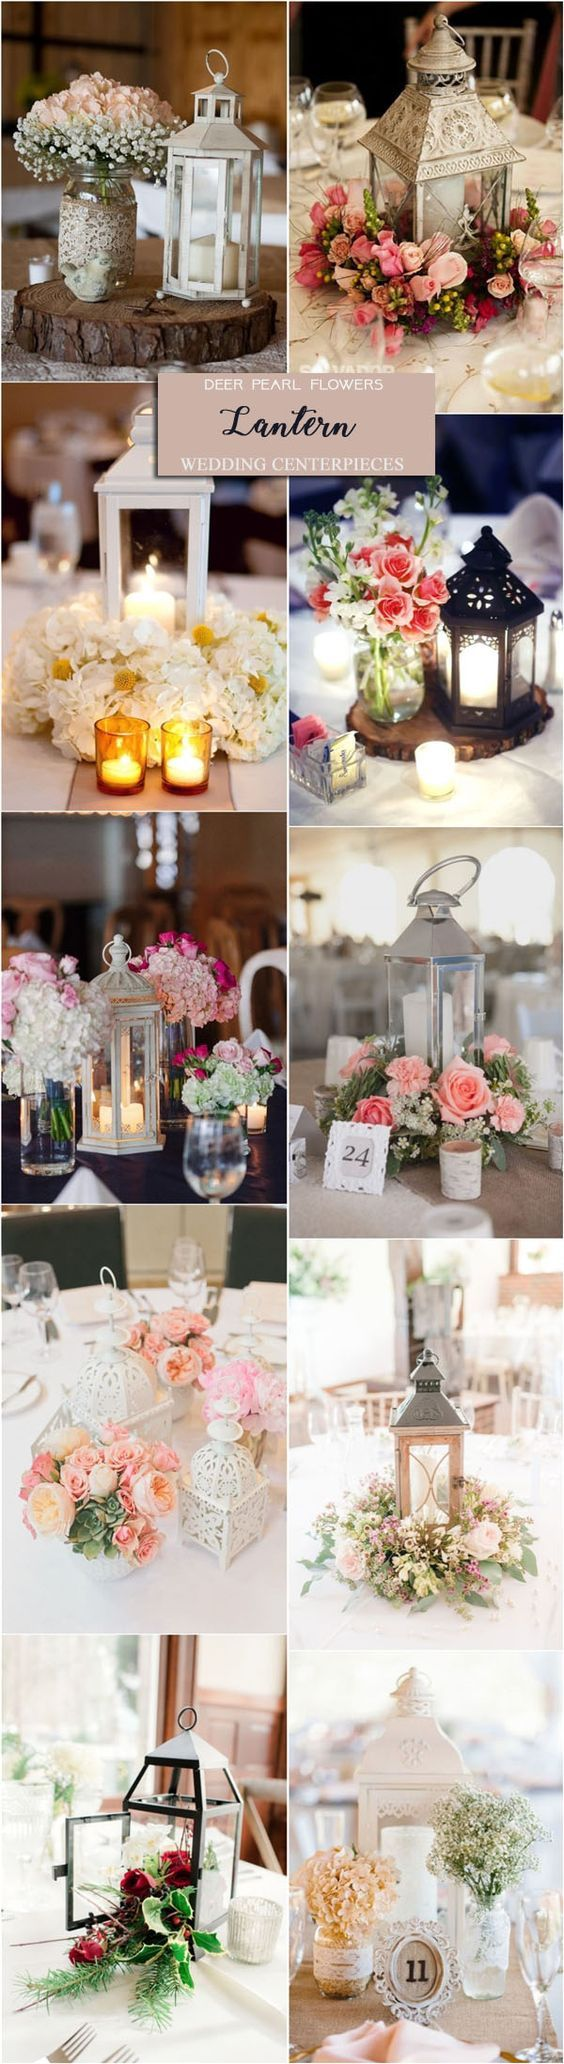 60 Insanely Wedding Centerpiece Ideas You'll Love | Deer Pearl Flowers - Part 2